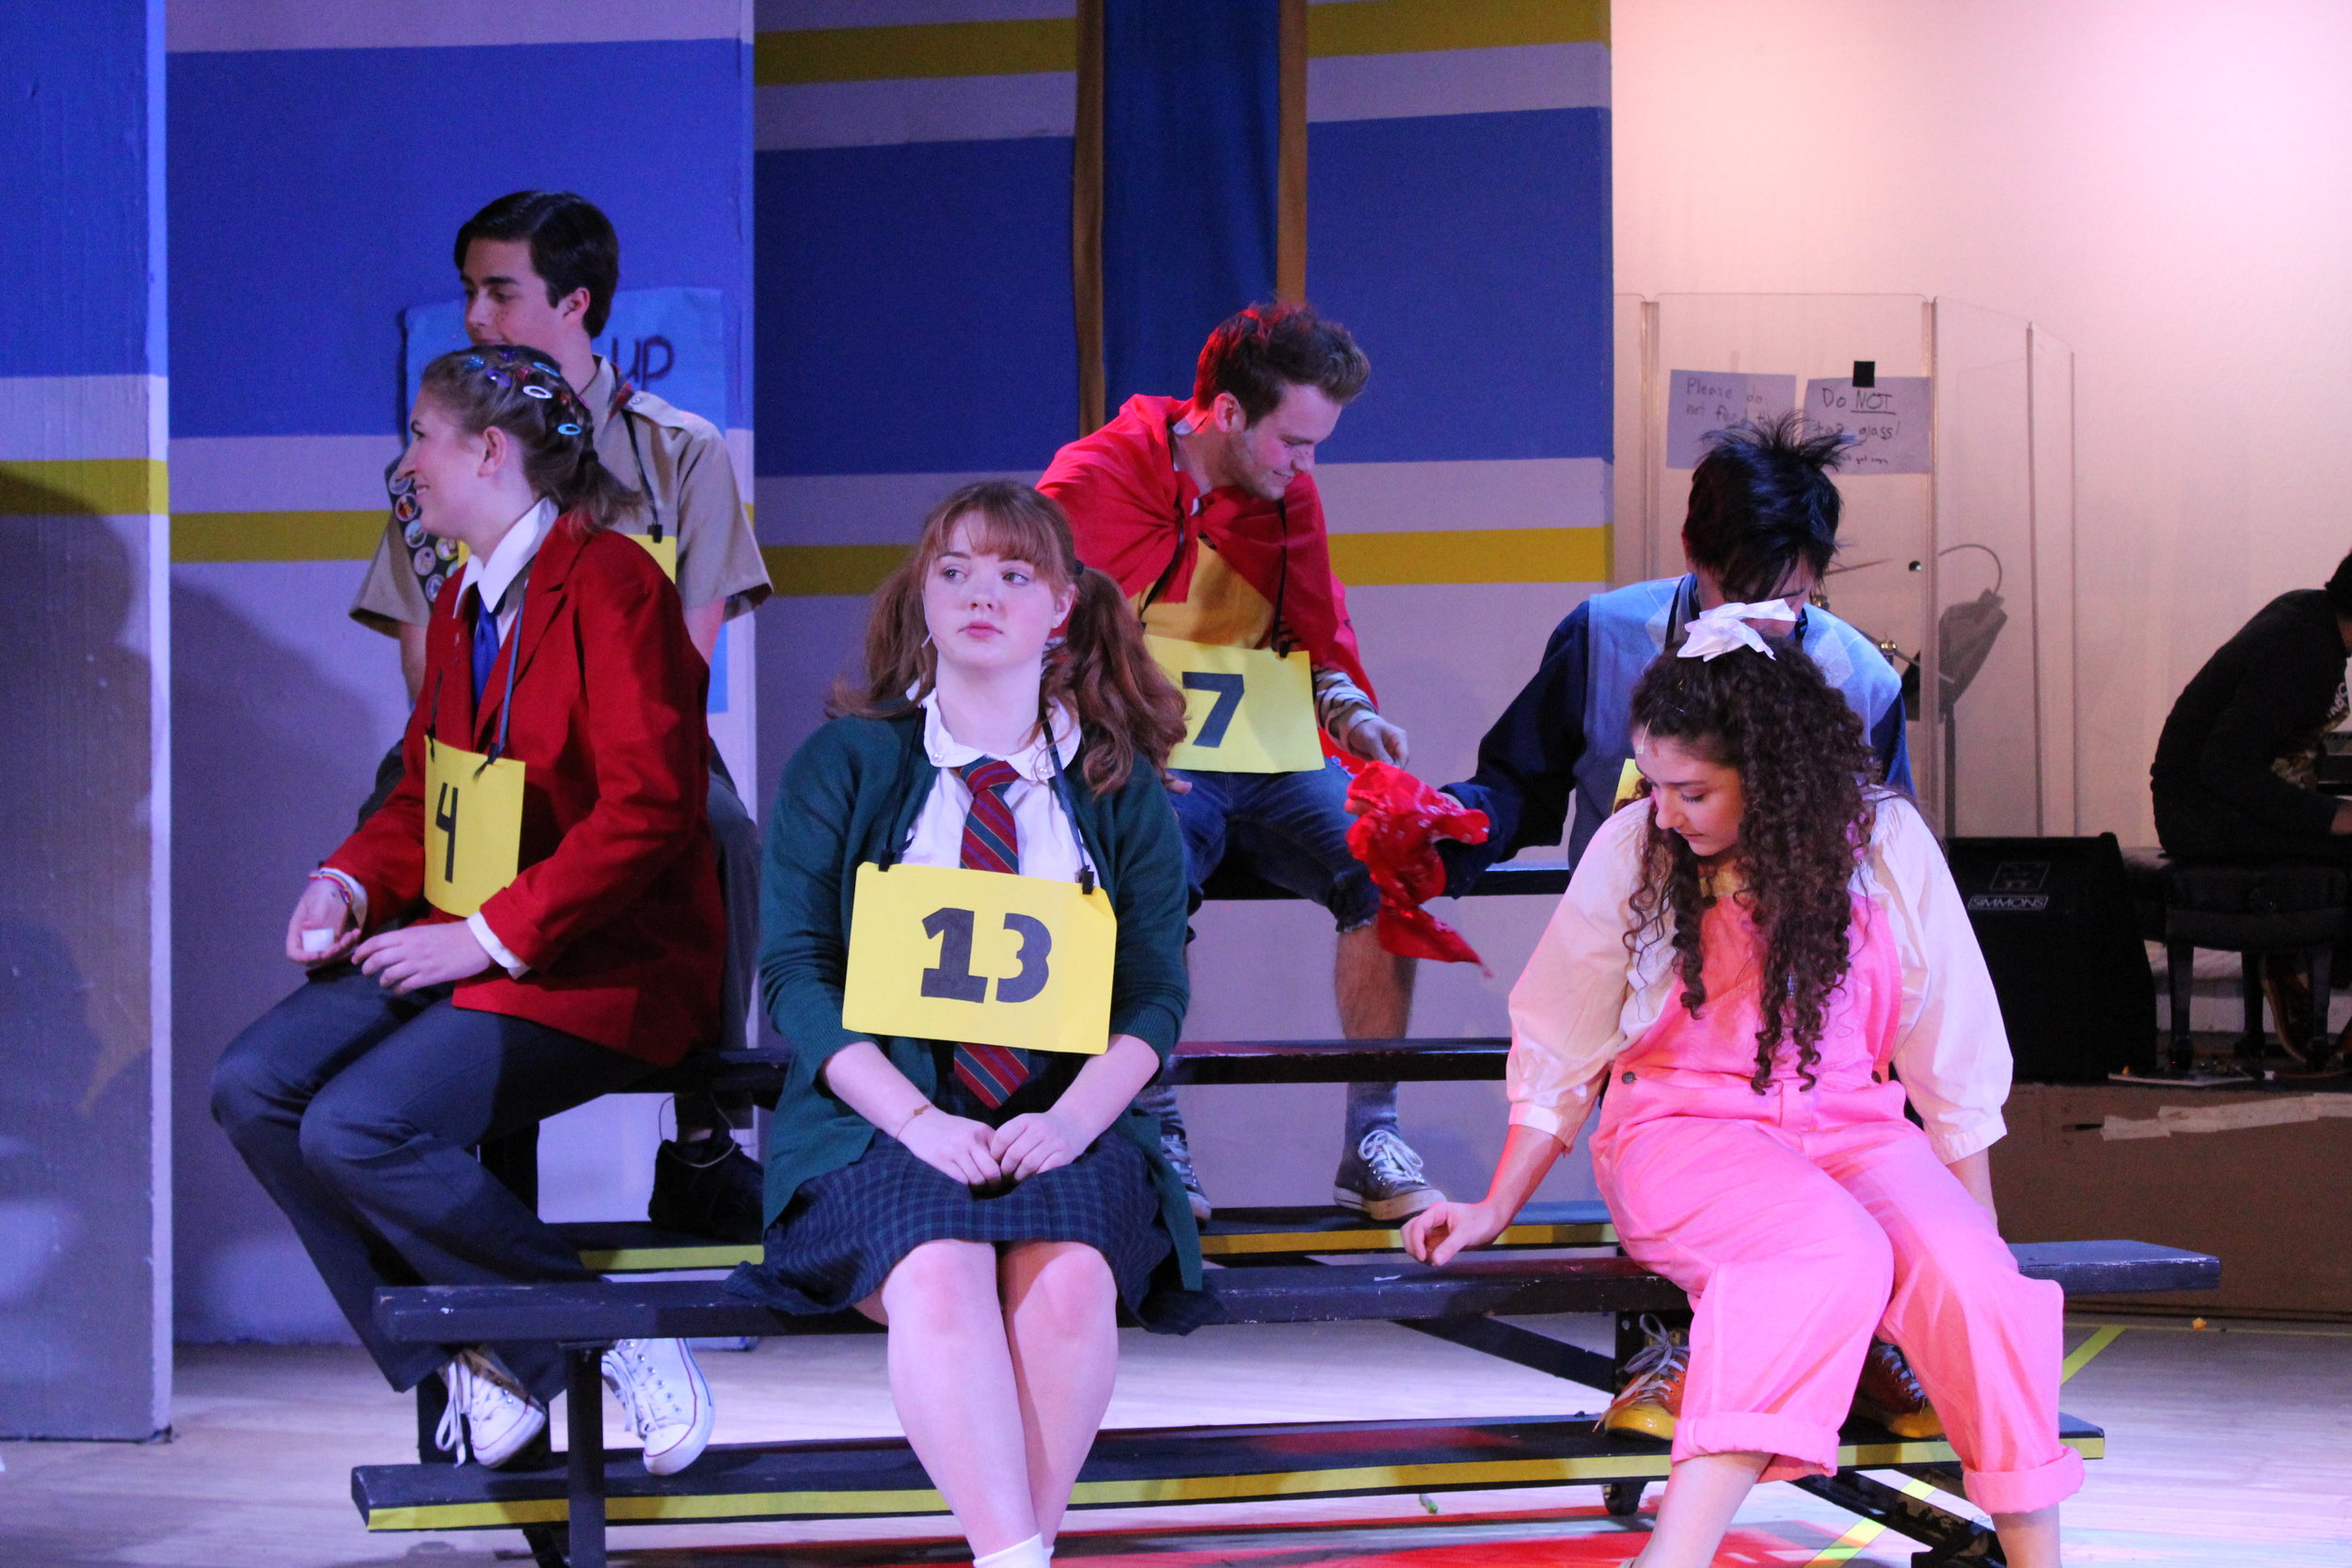 """The Spellers in """"The 25th Annual Putnam County Spelling Bee"""" await their next turn at the microphone. (Fall 2018)"""